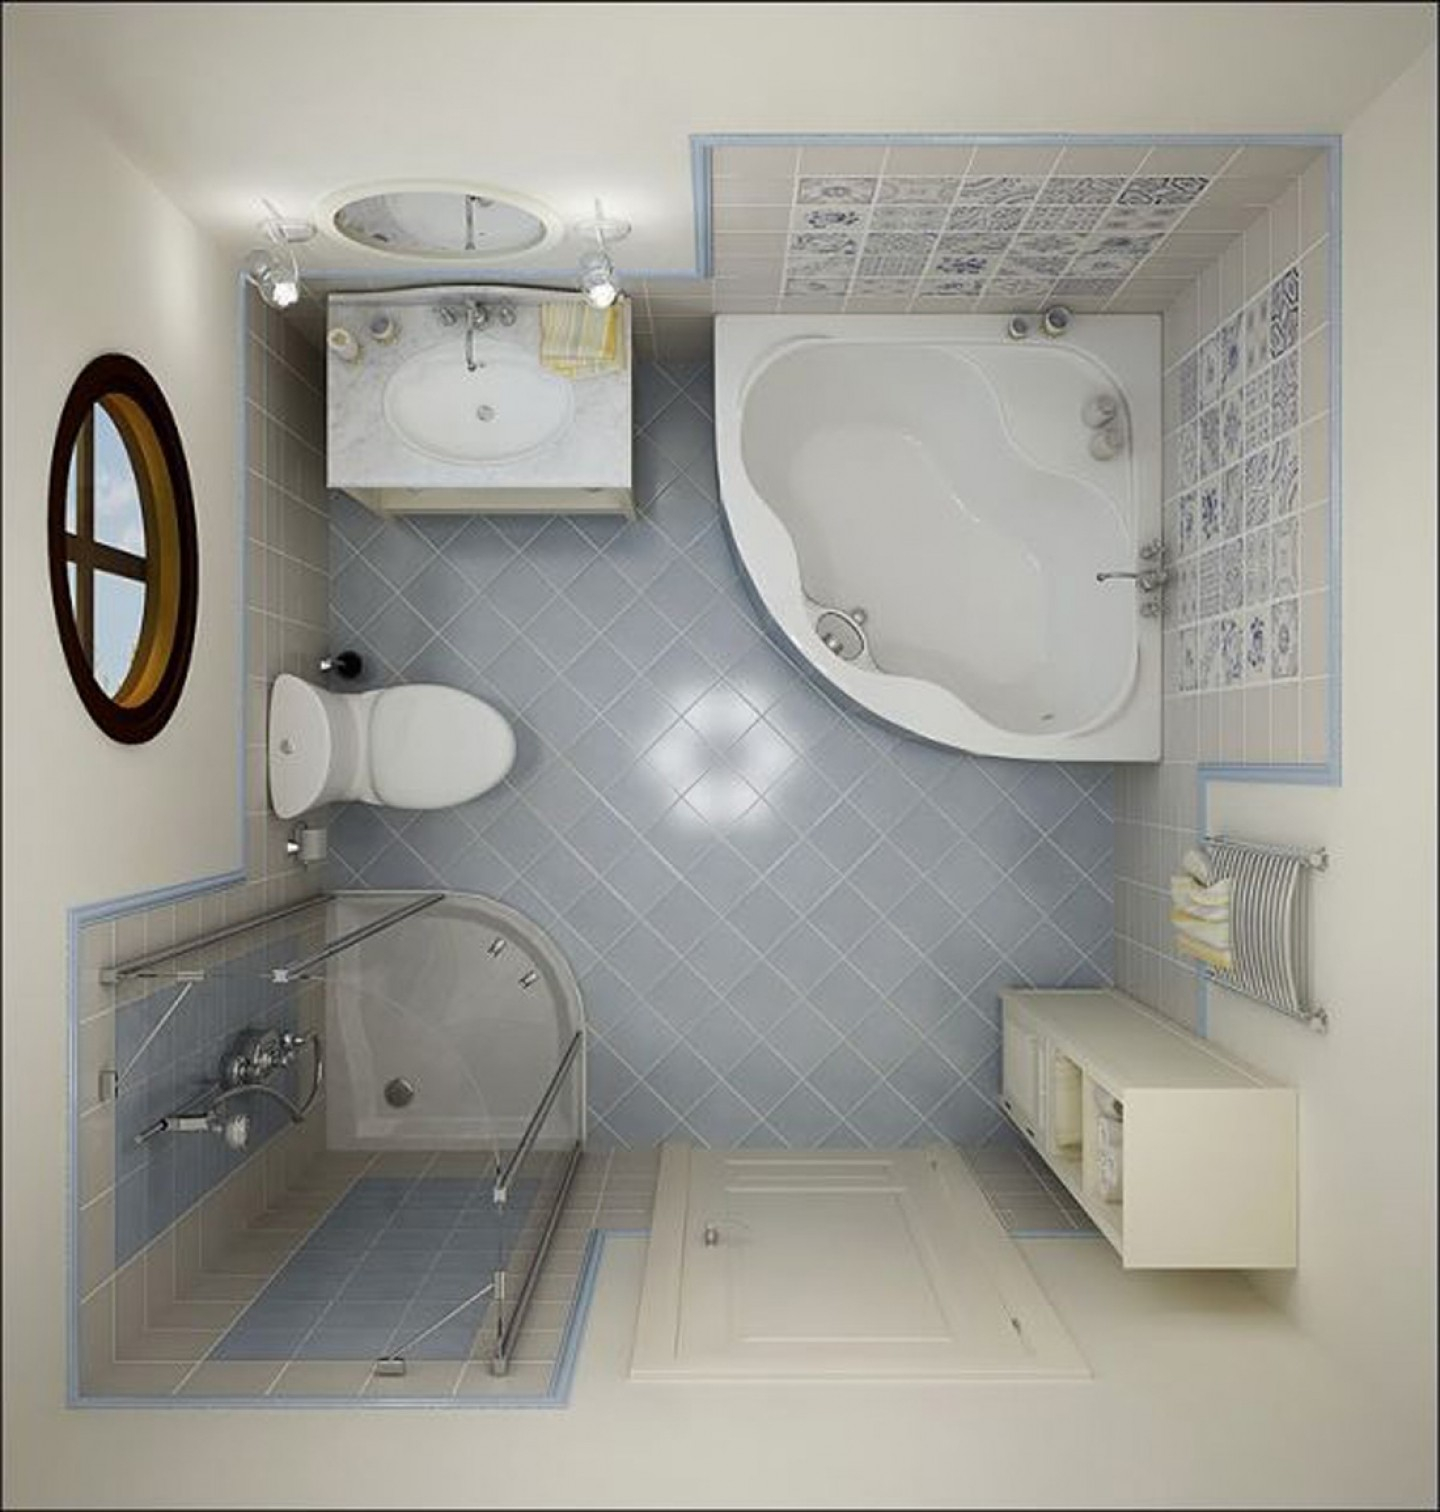 Amazing Curving White Bath Up Plus White Oval Sink Also Toilet Combined With regarding Unique Oval Room Blue Bathroom